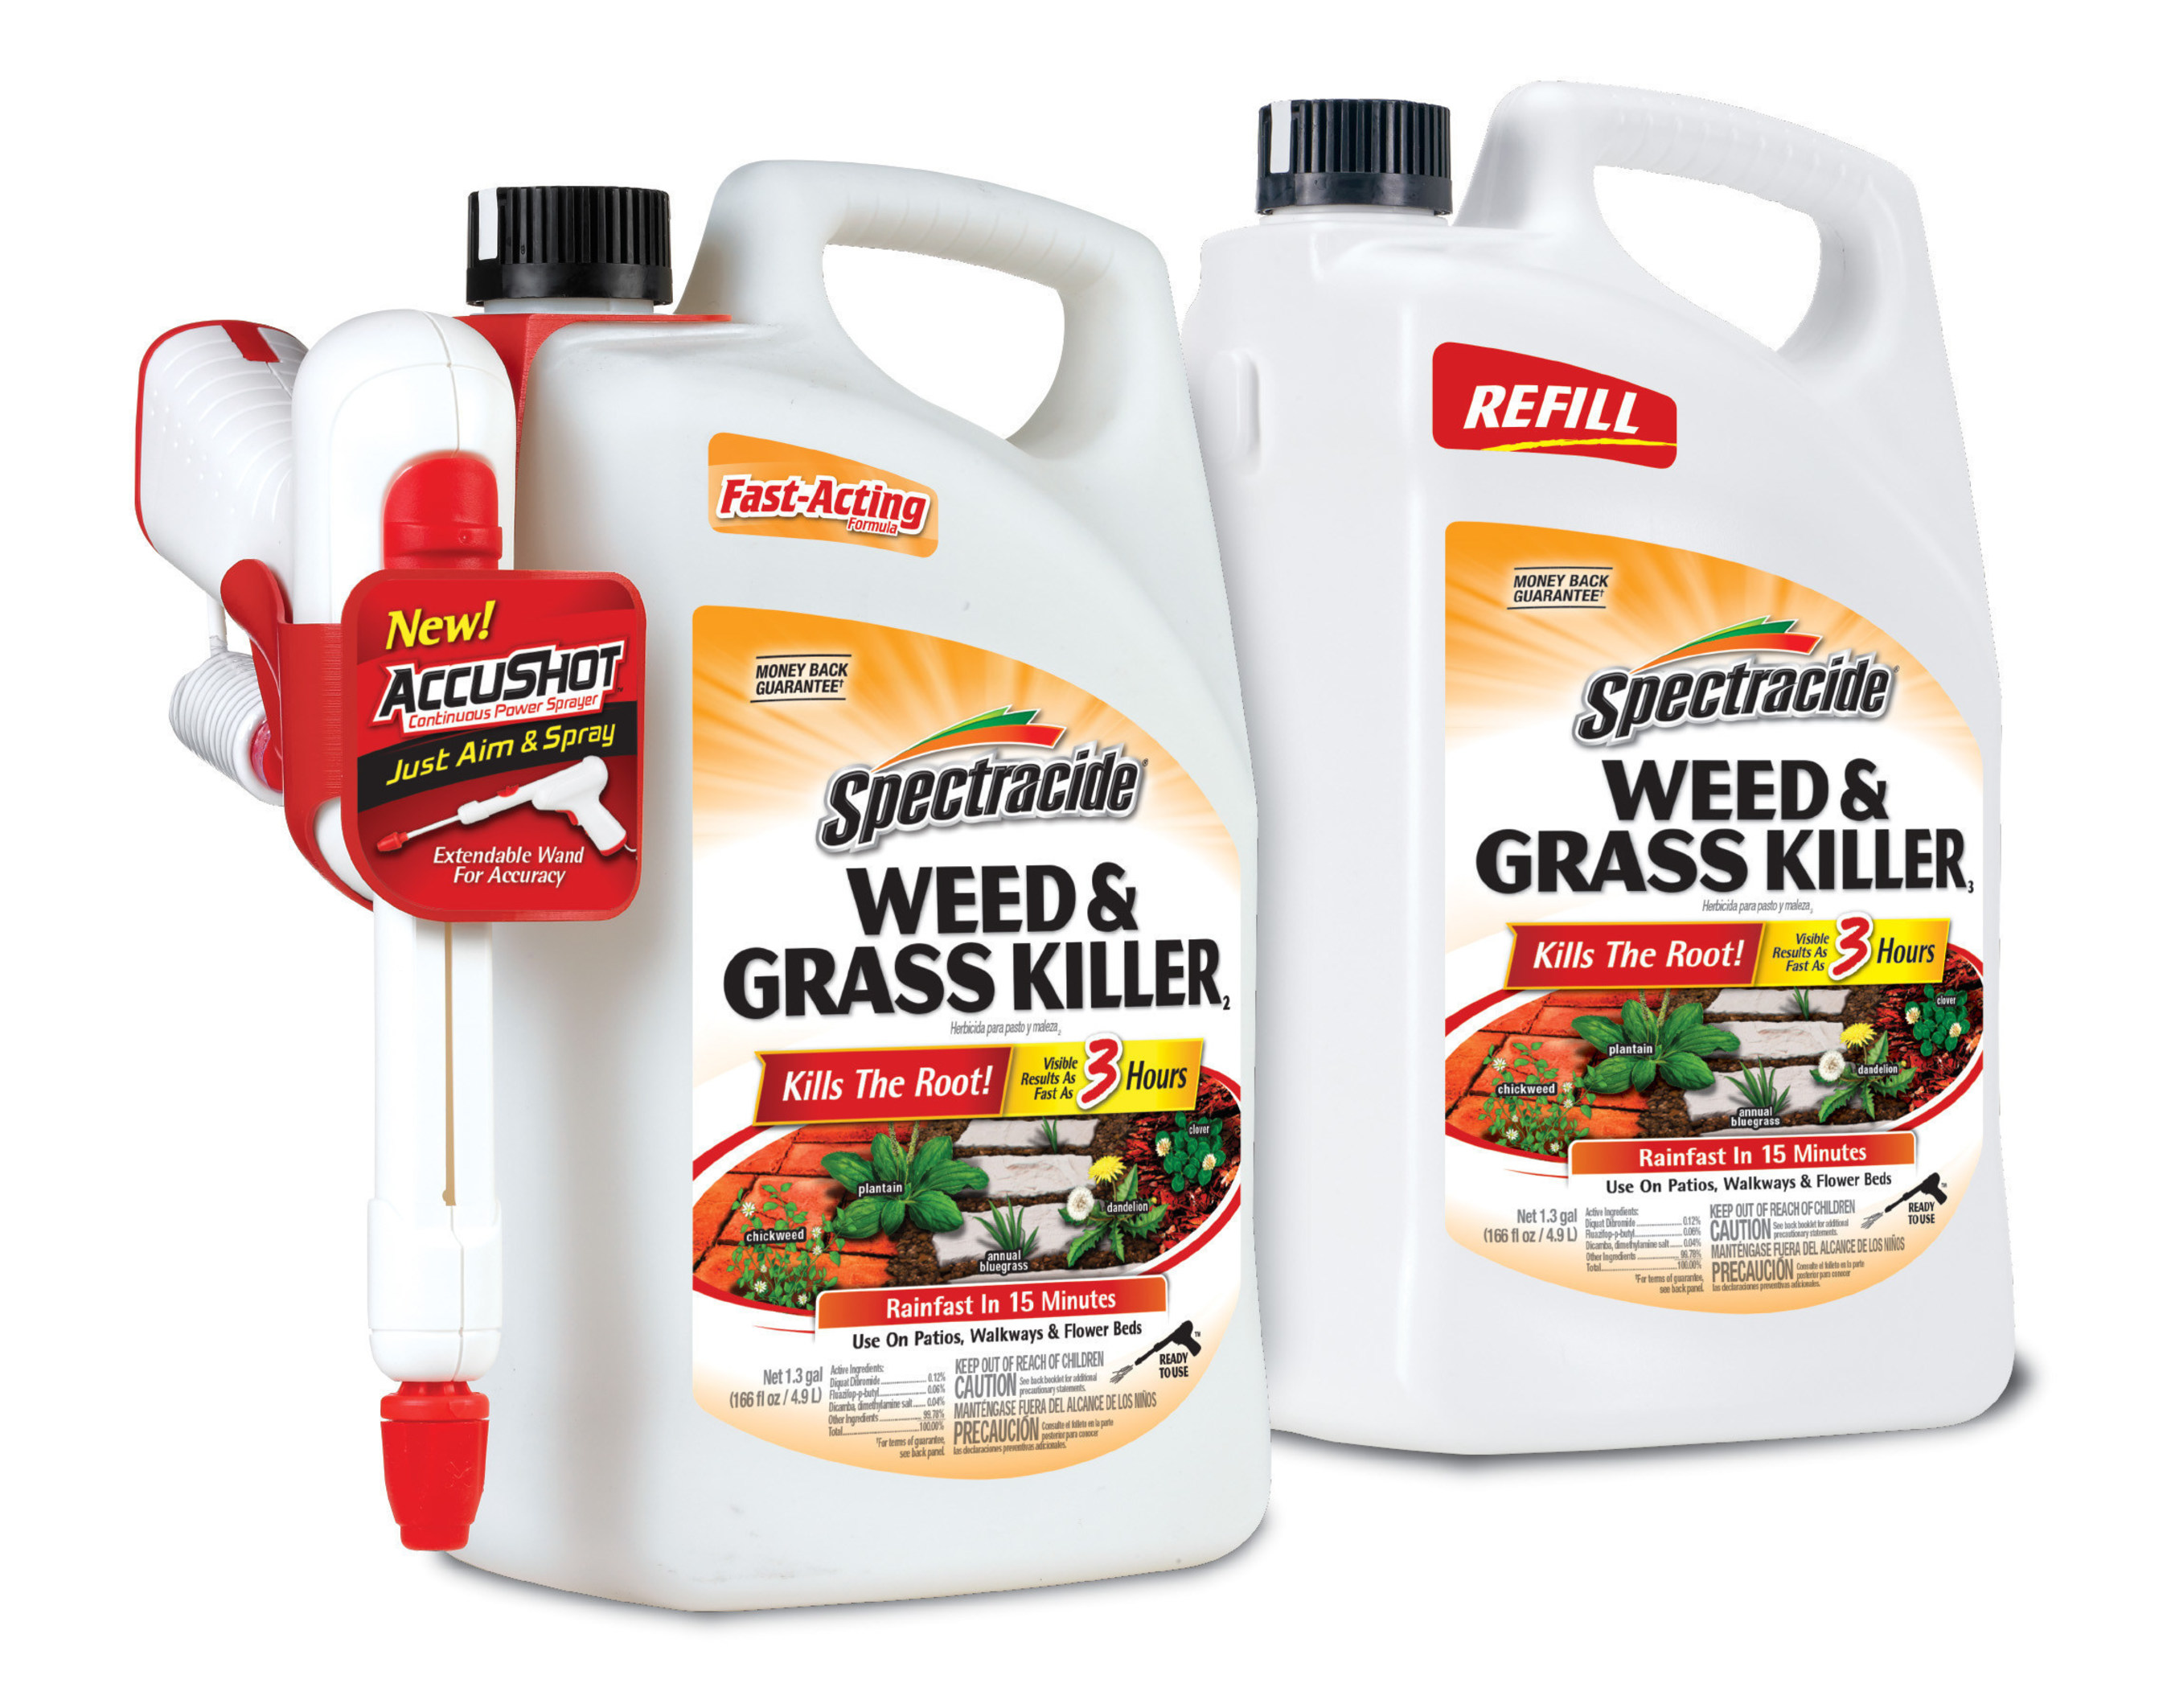 Spectracide AccuShot Weed & Grass Killer Ready-to-Use.